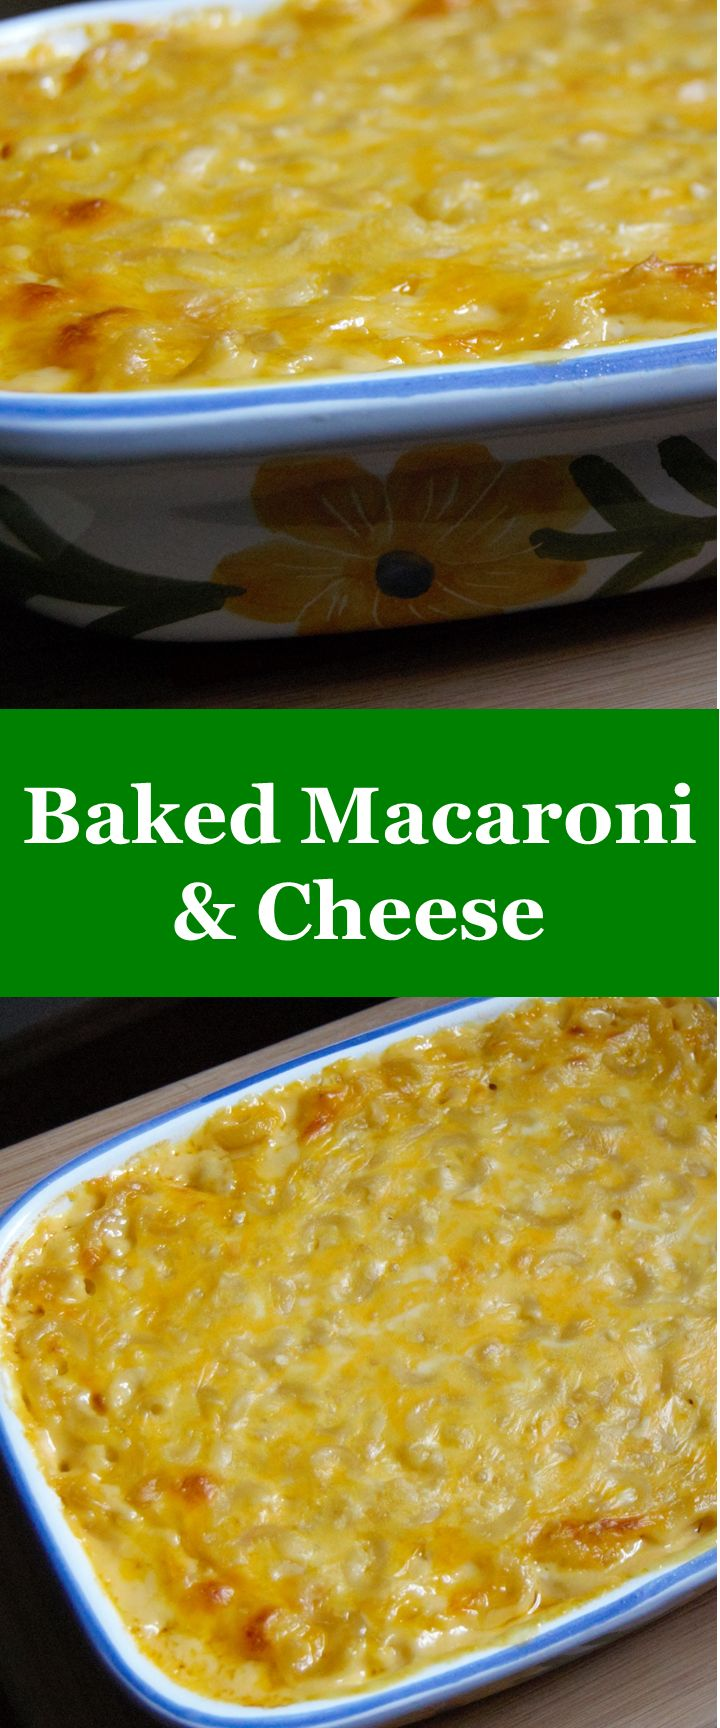 Baked Macaroni & Cheese that bakes up creamy and delicious.